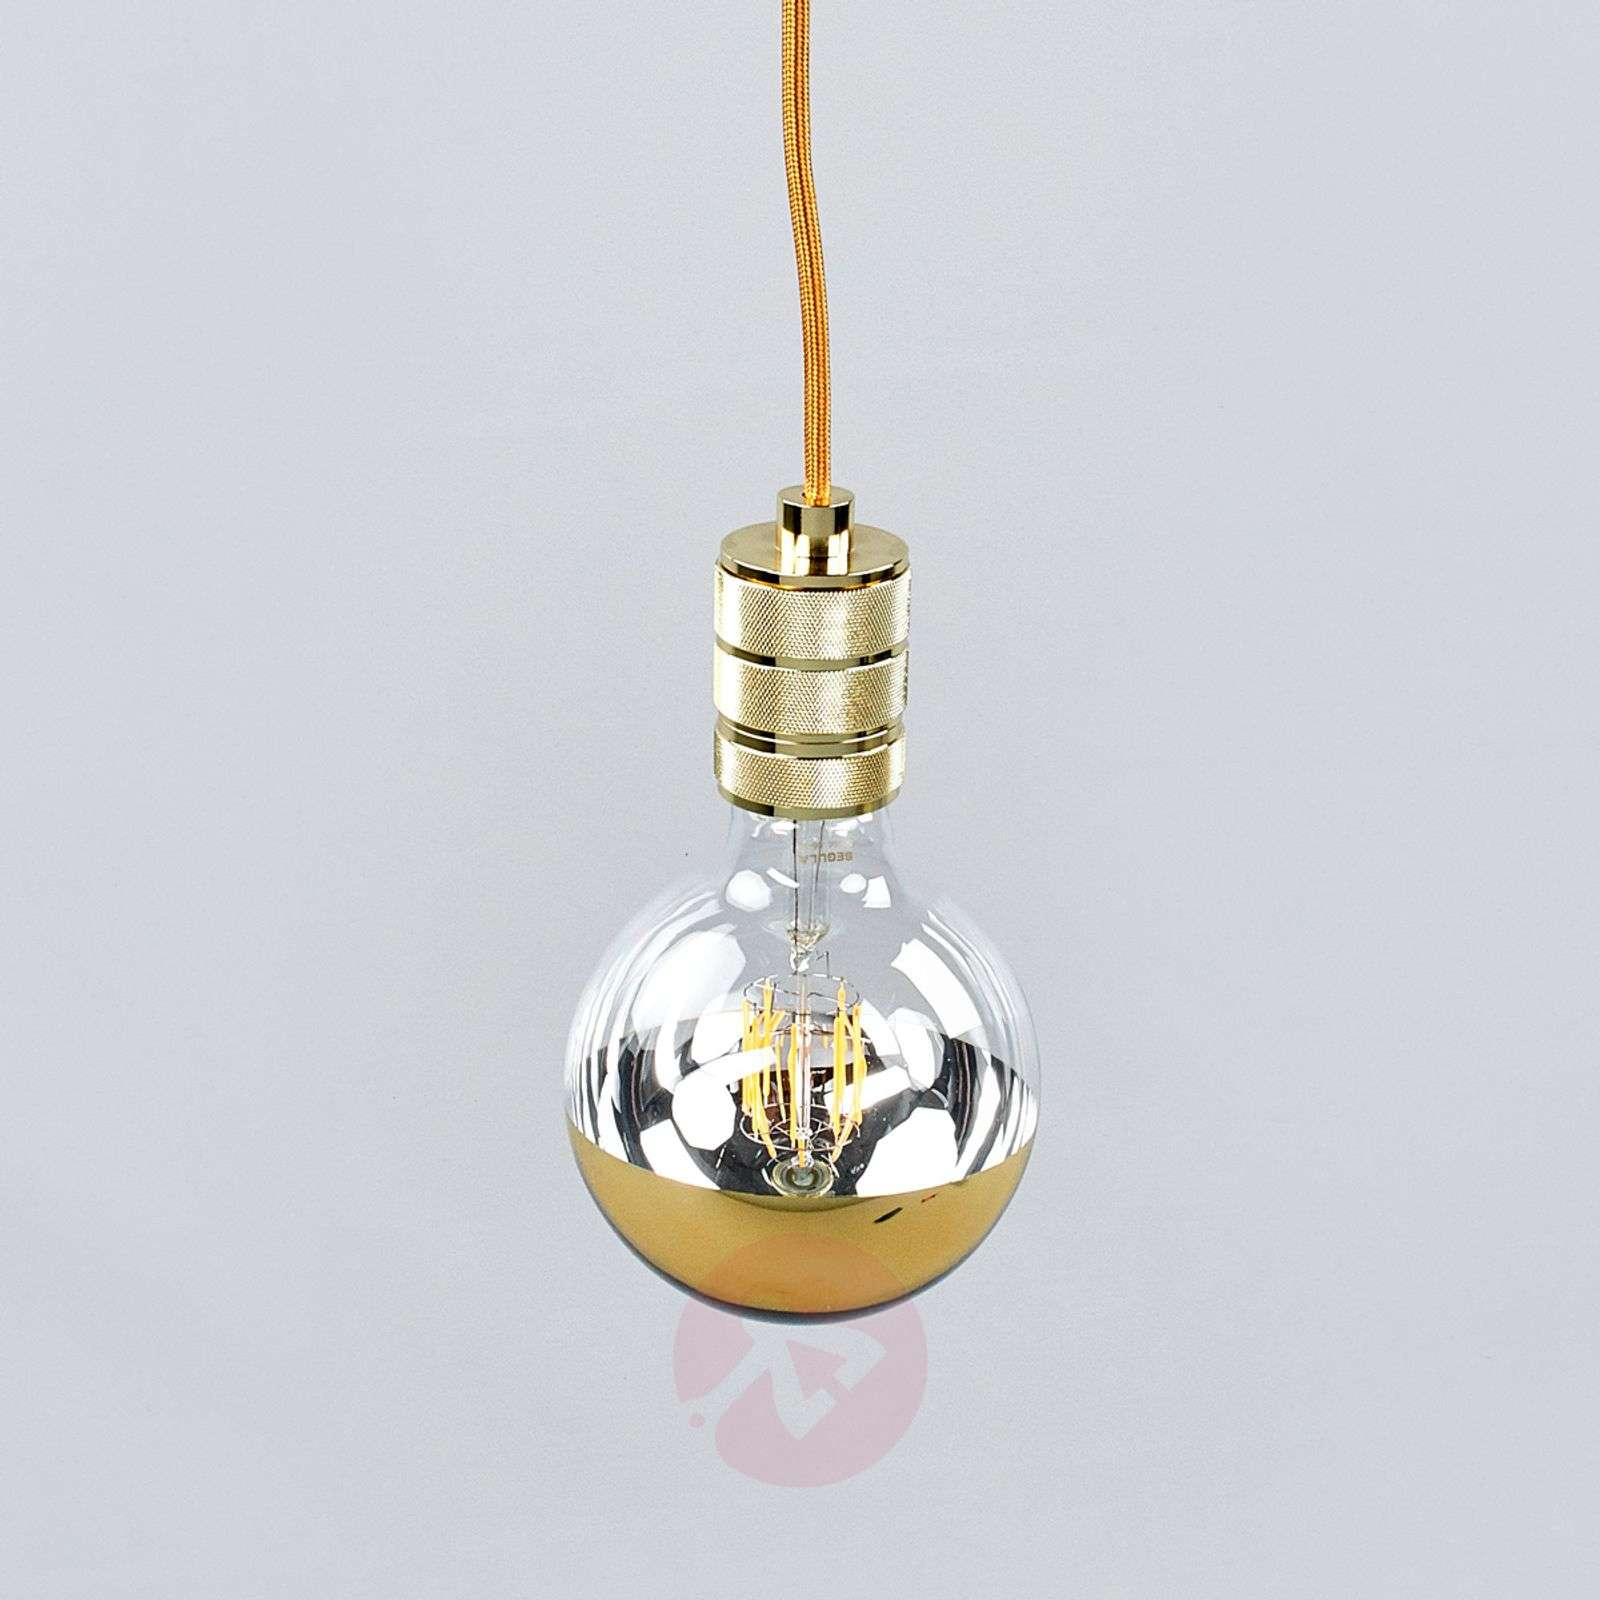 Chique LED-pendellamp Chicago met gouden finish-8536172-01